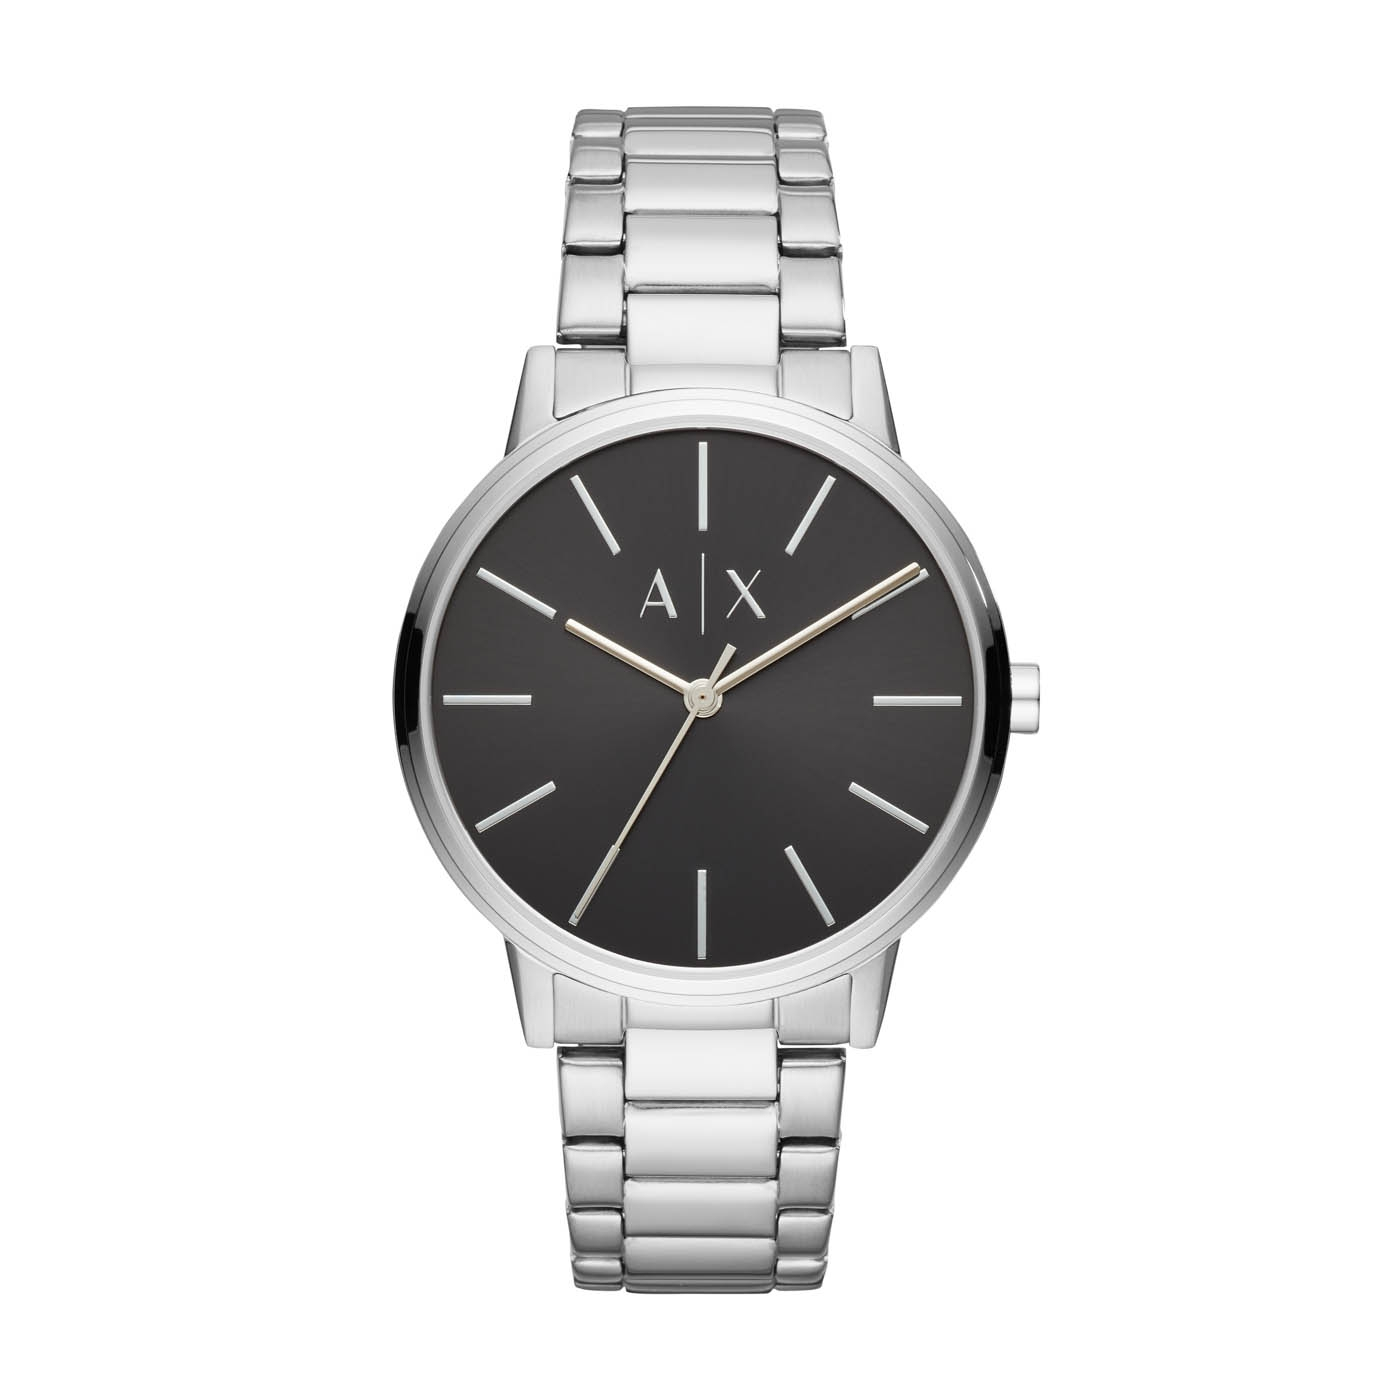 Bilde av Armani Exchange Cayde watch AX2700